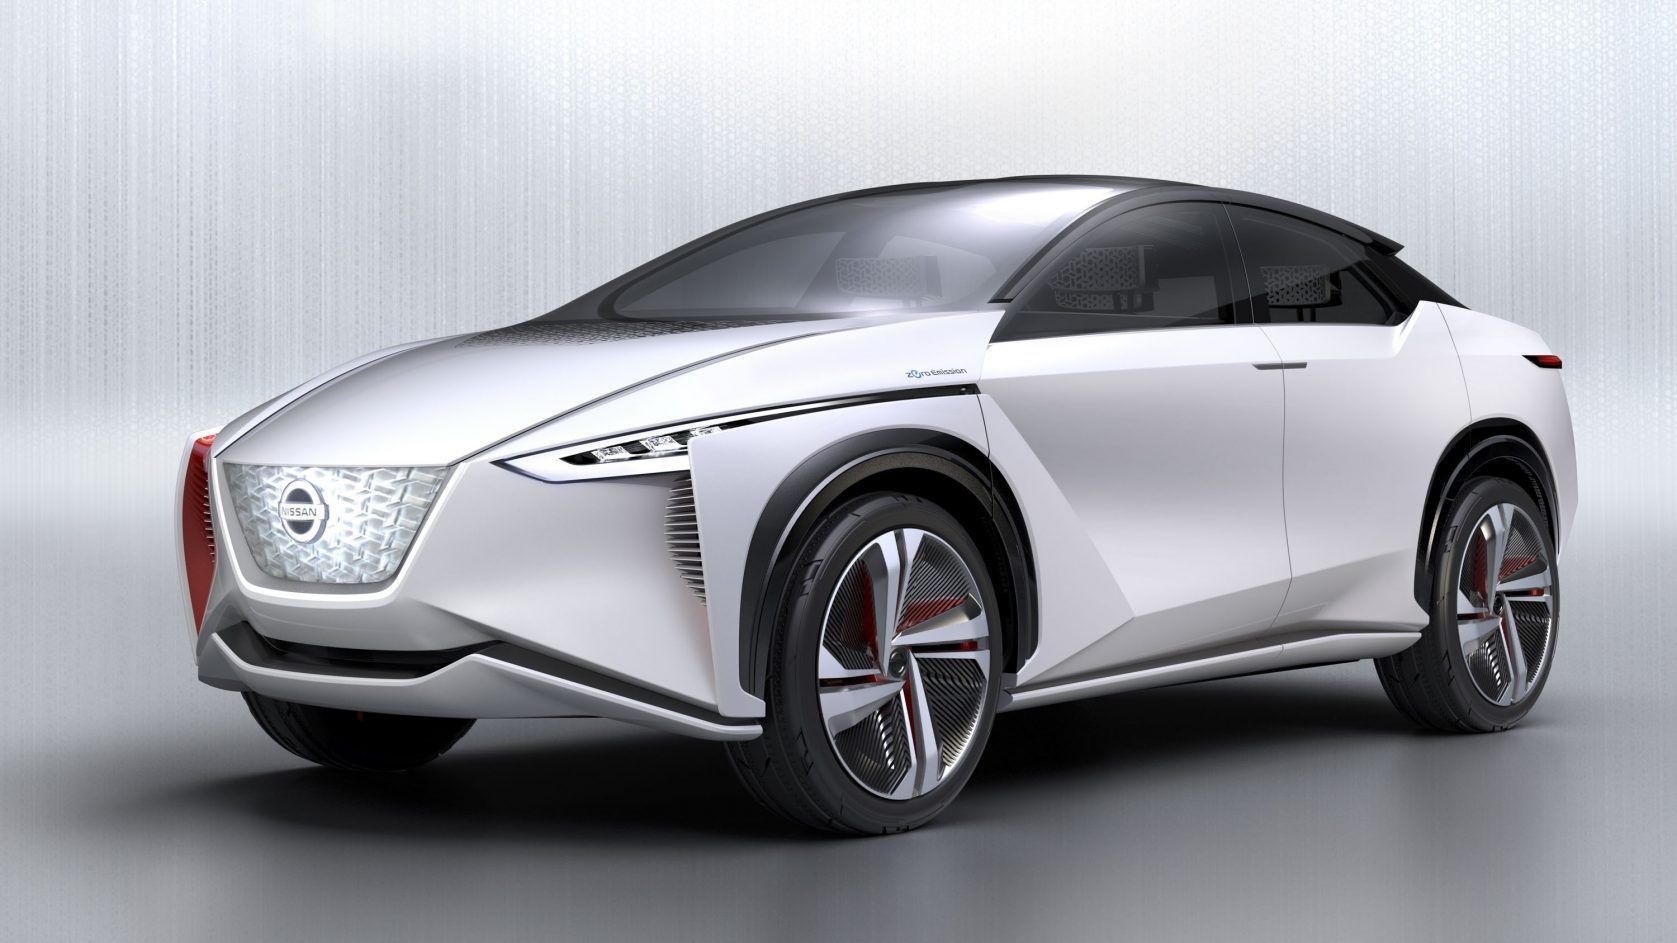 We Might Call Nissan The Leaders Of The All Electric Vehicles After The Leaf Model Intro In 2010 The 2020 Nissan Imx Will Strike The Marketplaces This Comp